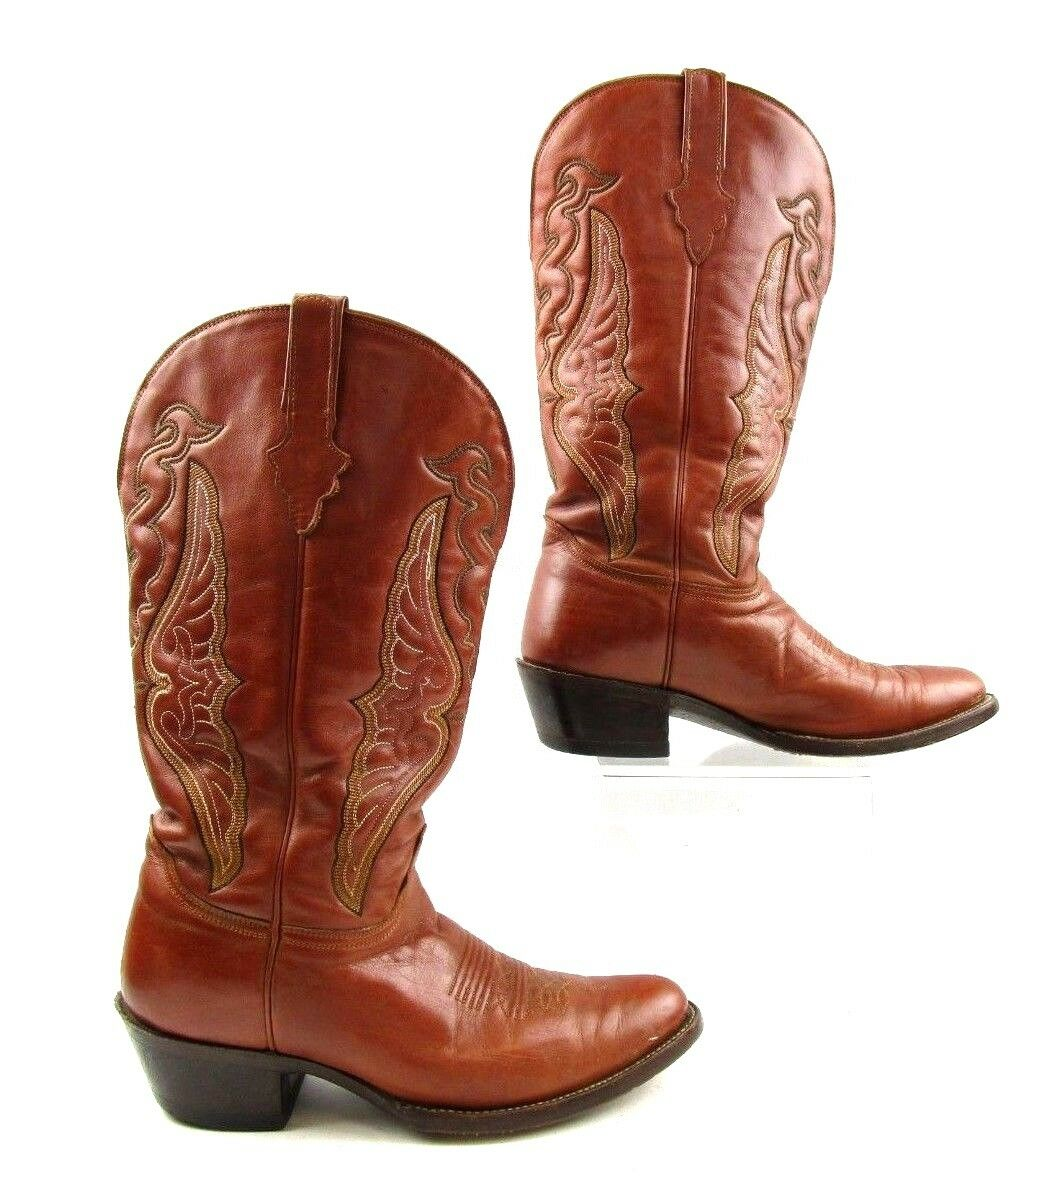 Men's Cordero Brown Leather Wing Embroidered Design Western Boots Size  8 E WIDE